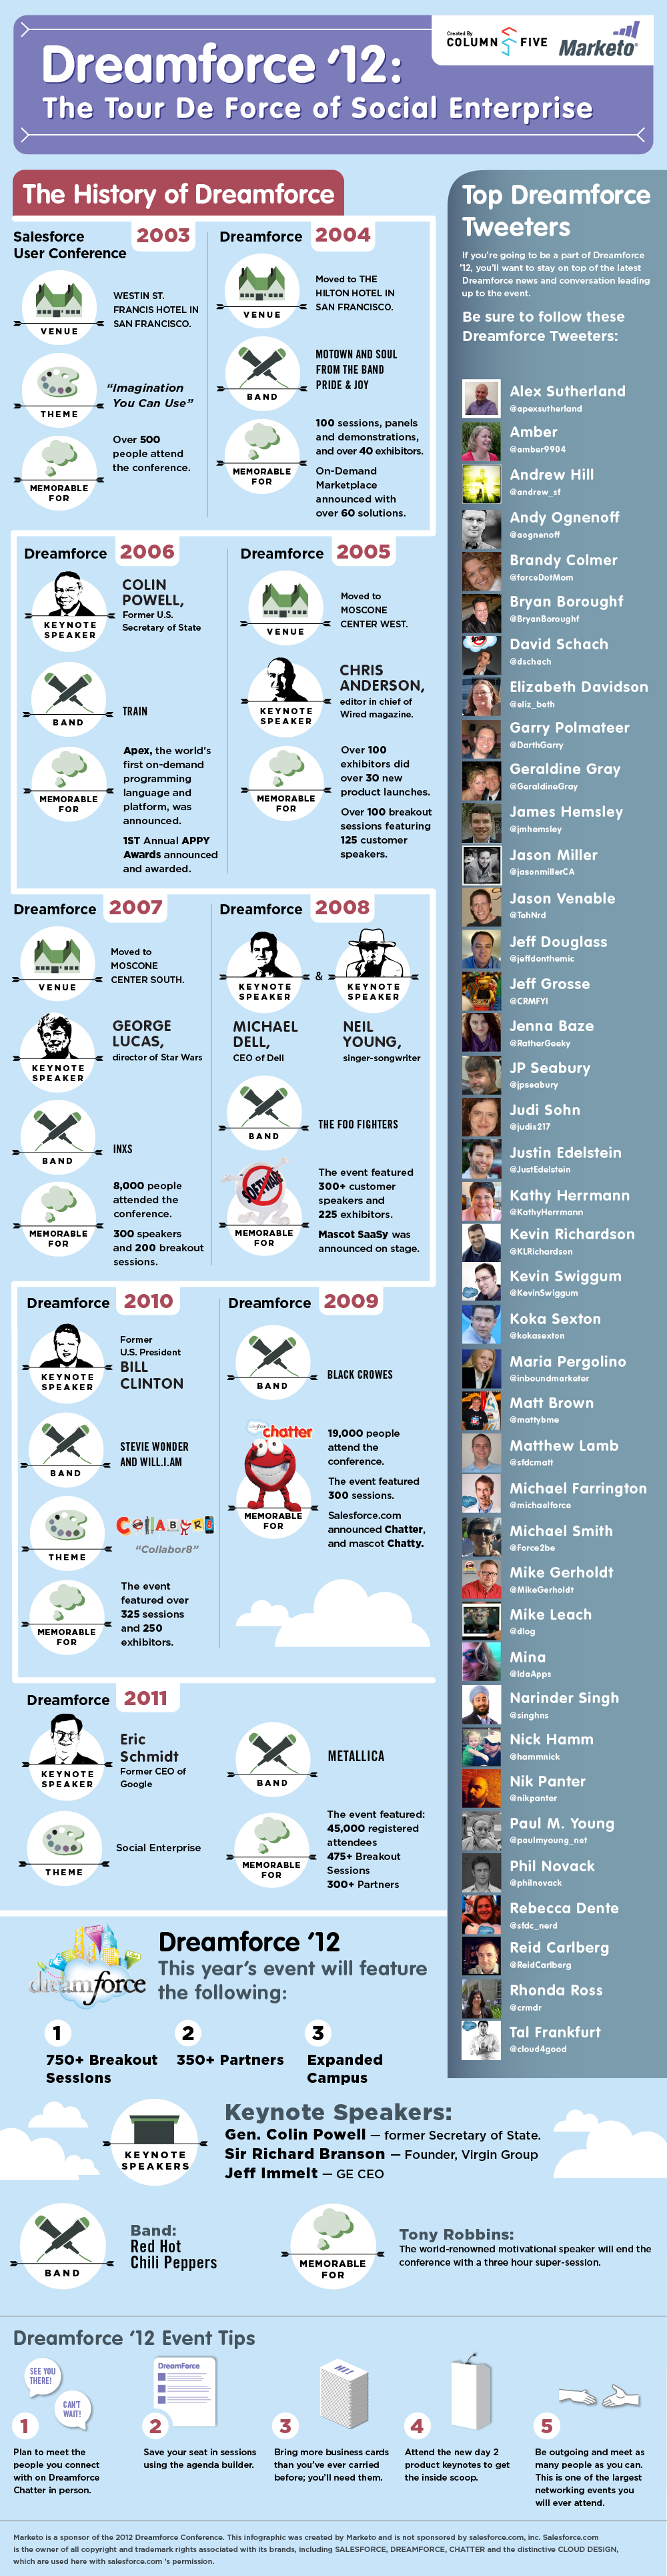 History-of-Dreamforce-12-Infographic